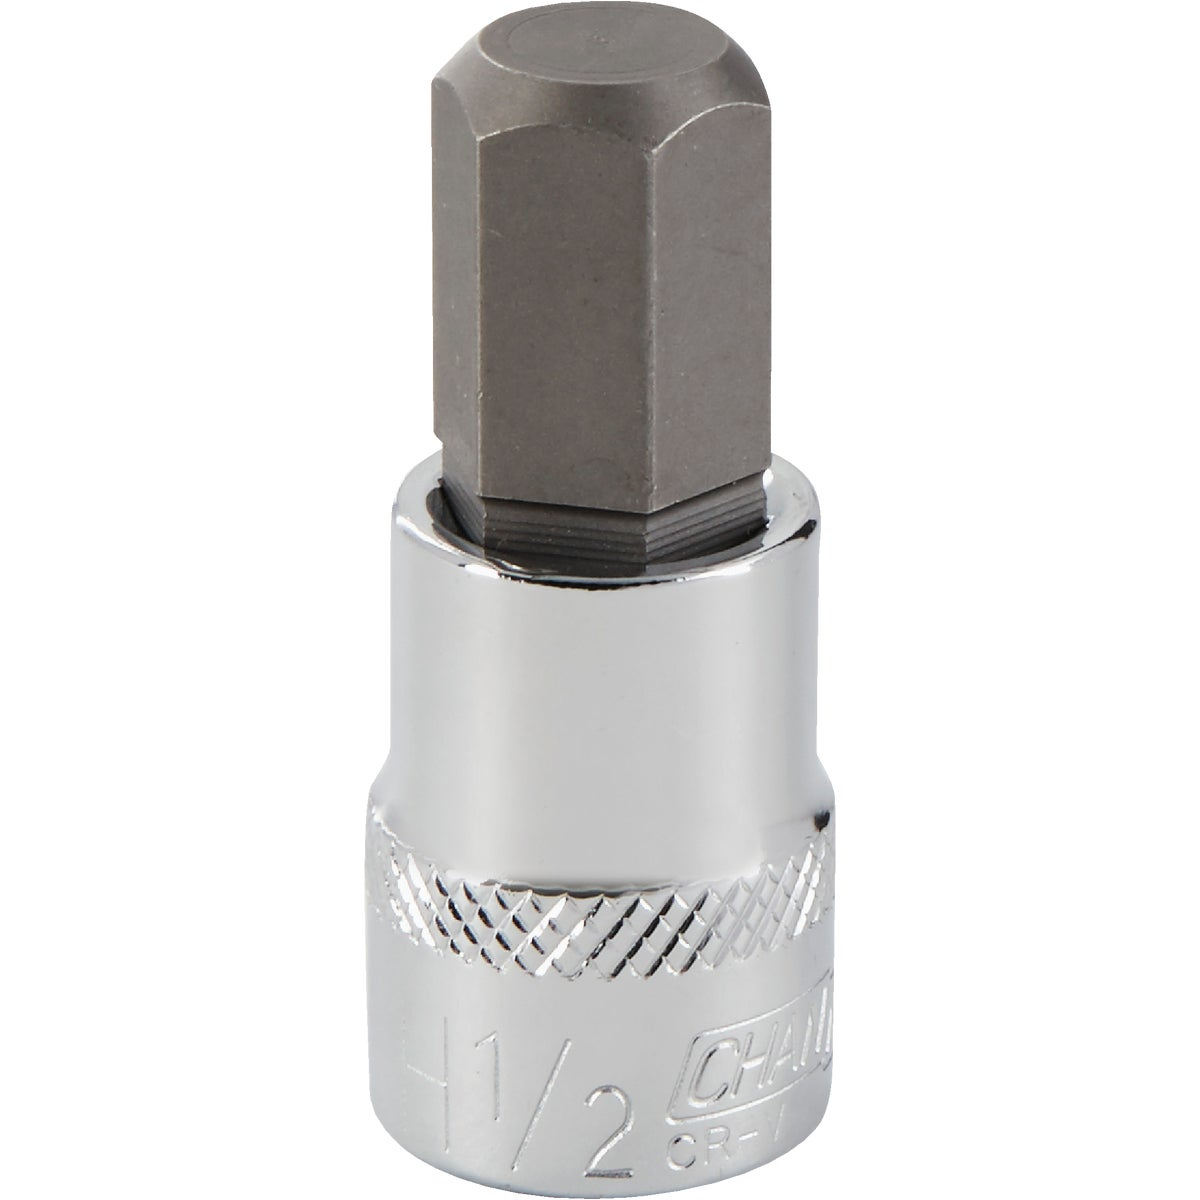 "1/2"" HEX BIT SOCKET - 58855 by Apex Tool Group"